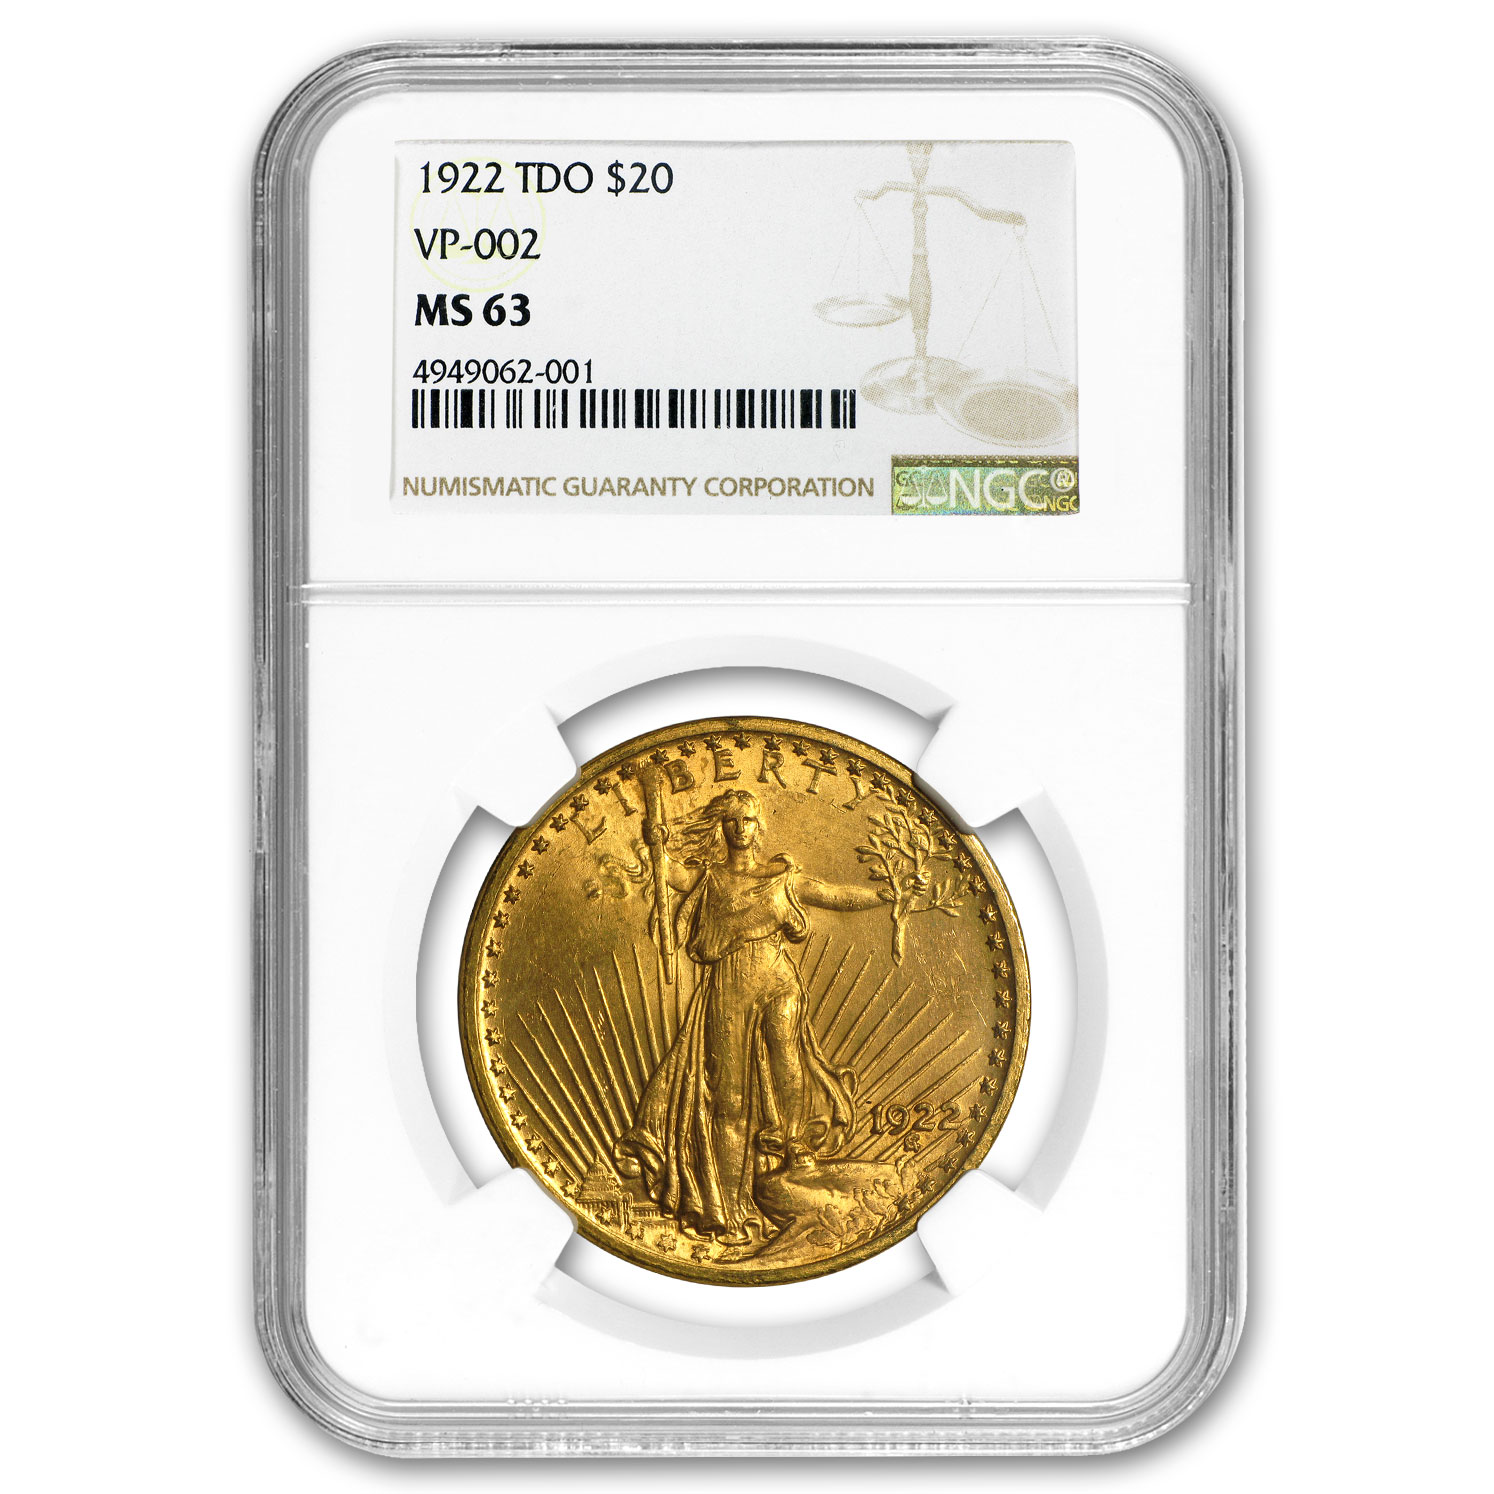 1922 $20 St. Gaudens Gold Double Eagle MS-63 NGC (TDO VP-002)